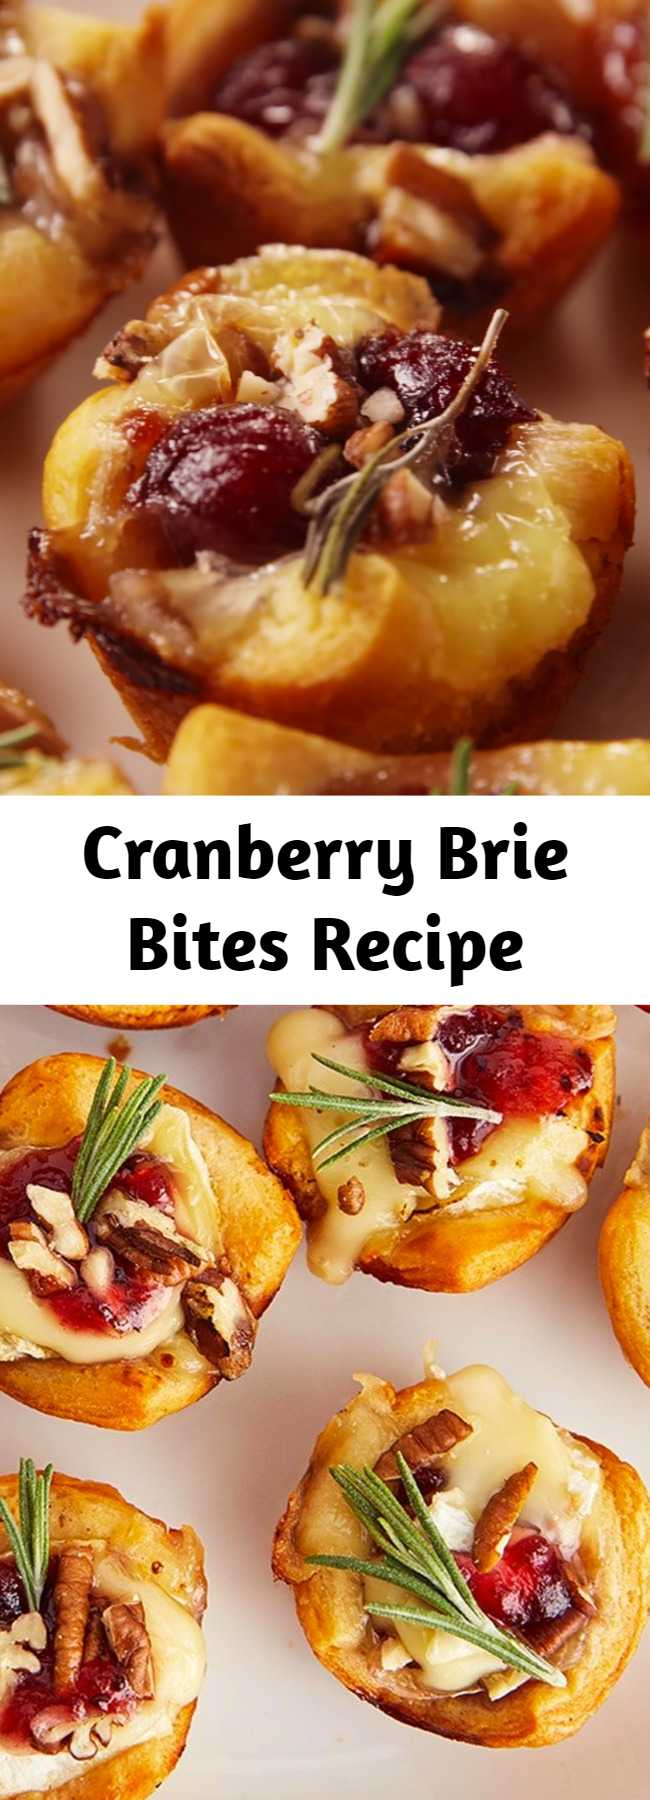 Cranberry Brie Bites Recipe - These little guys are the perfect appetizer to make during the holidays. Not only do they come together in seconds, they disappear in seconds too! Canned cranberries work great, but if you've got homemade cranberry sauce leftover, use it! #food #comfortfood #holiday #lunch #dinner #easyrecipe #recipe #inspiration #ideas #home